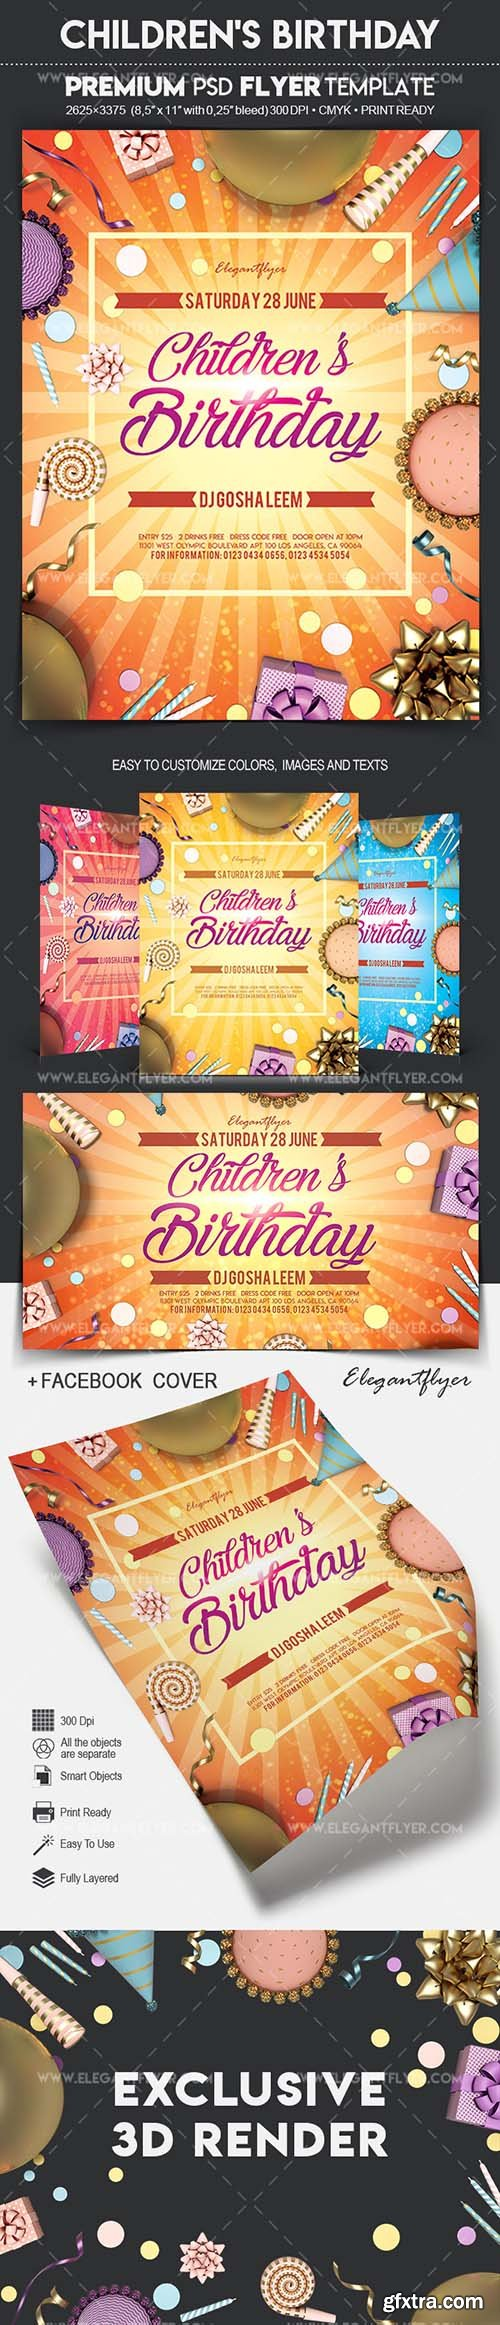 Childrens Birthday - Flyer PSD Template